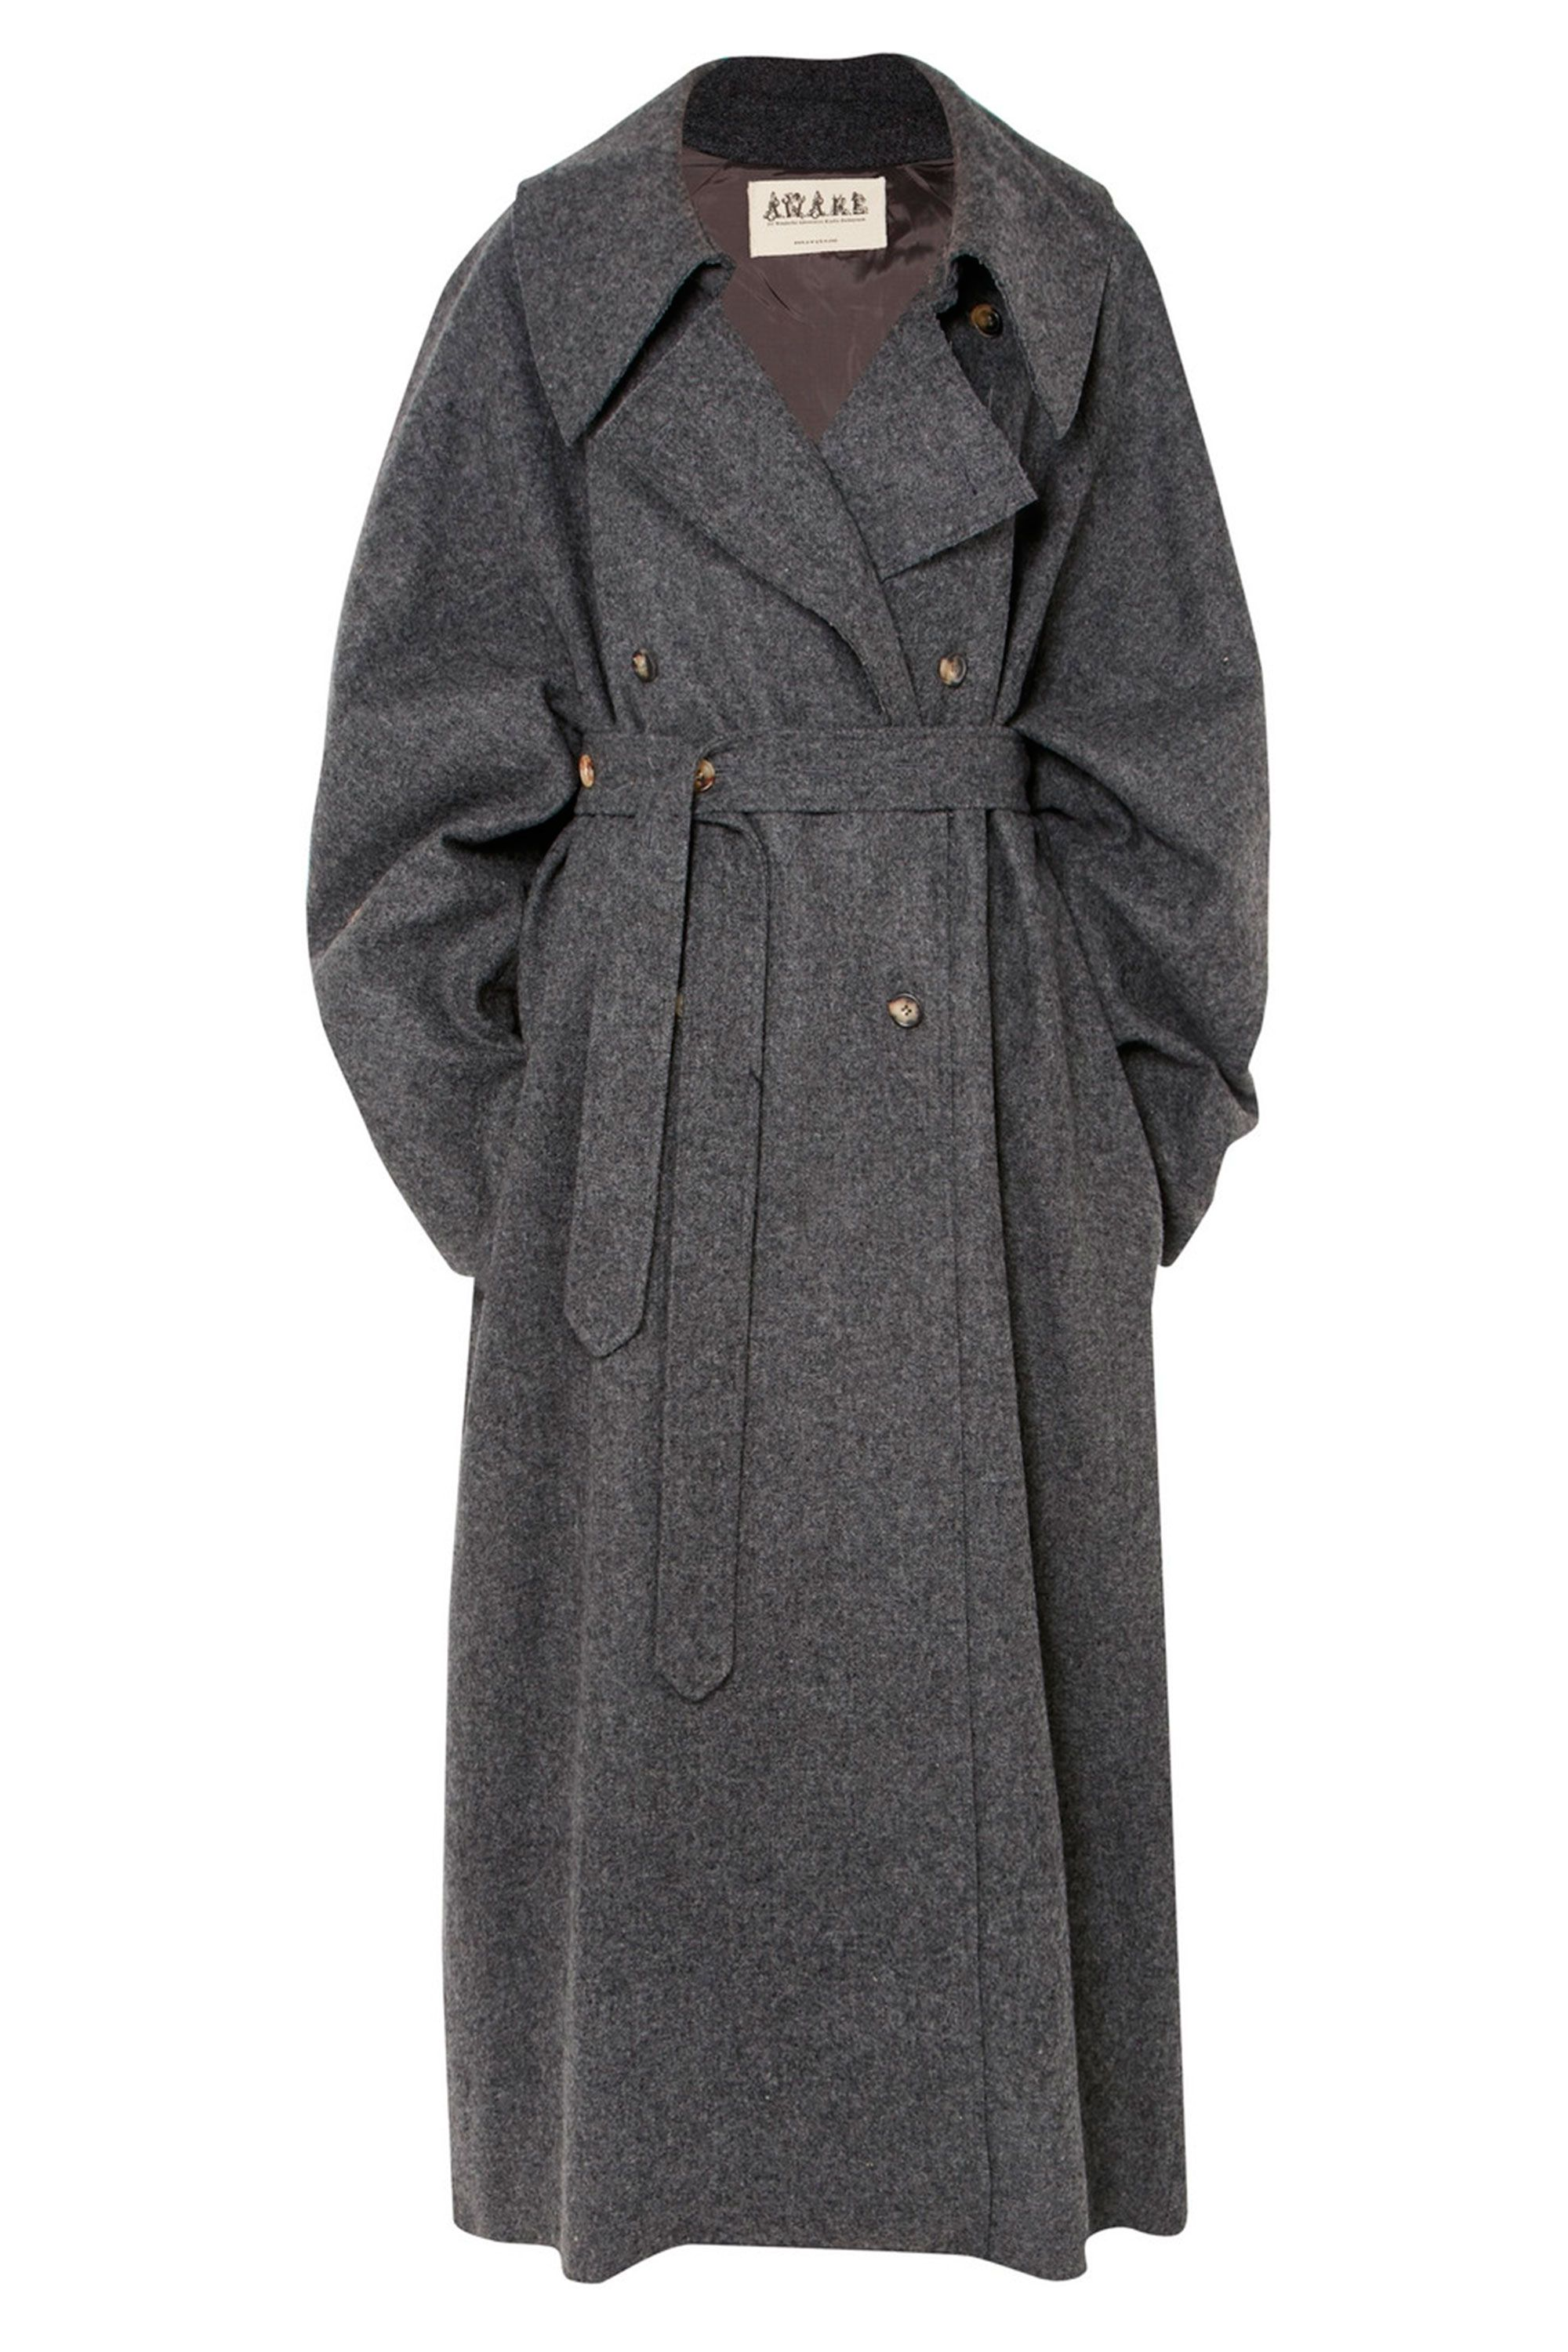 1a23010b811 Best winter coats 2019 – The best fall coats to buy now